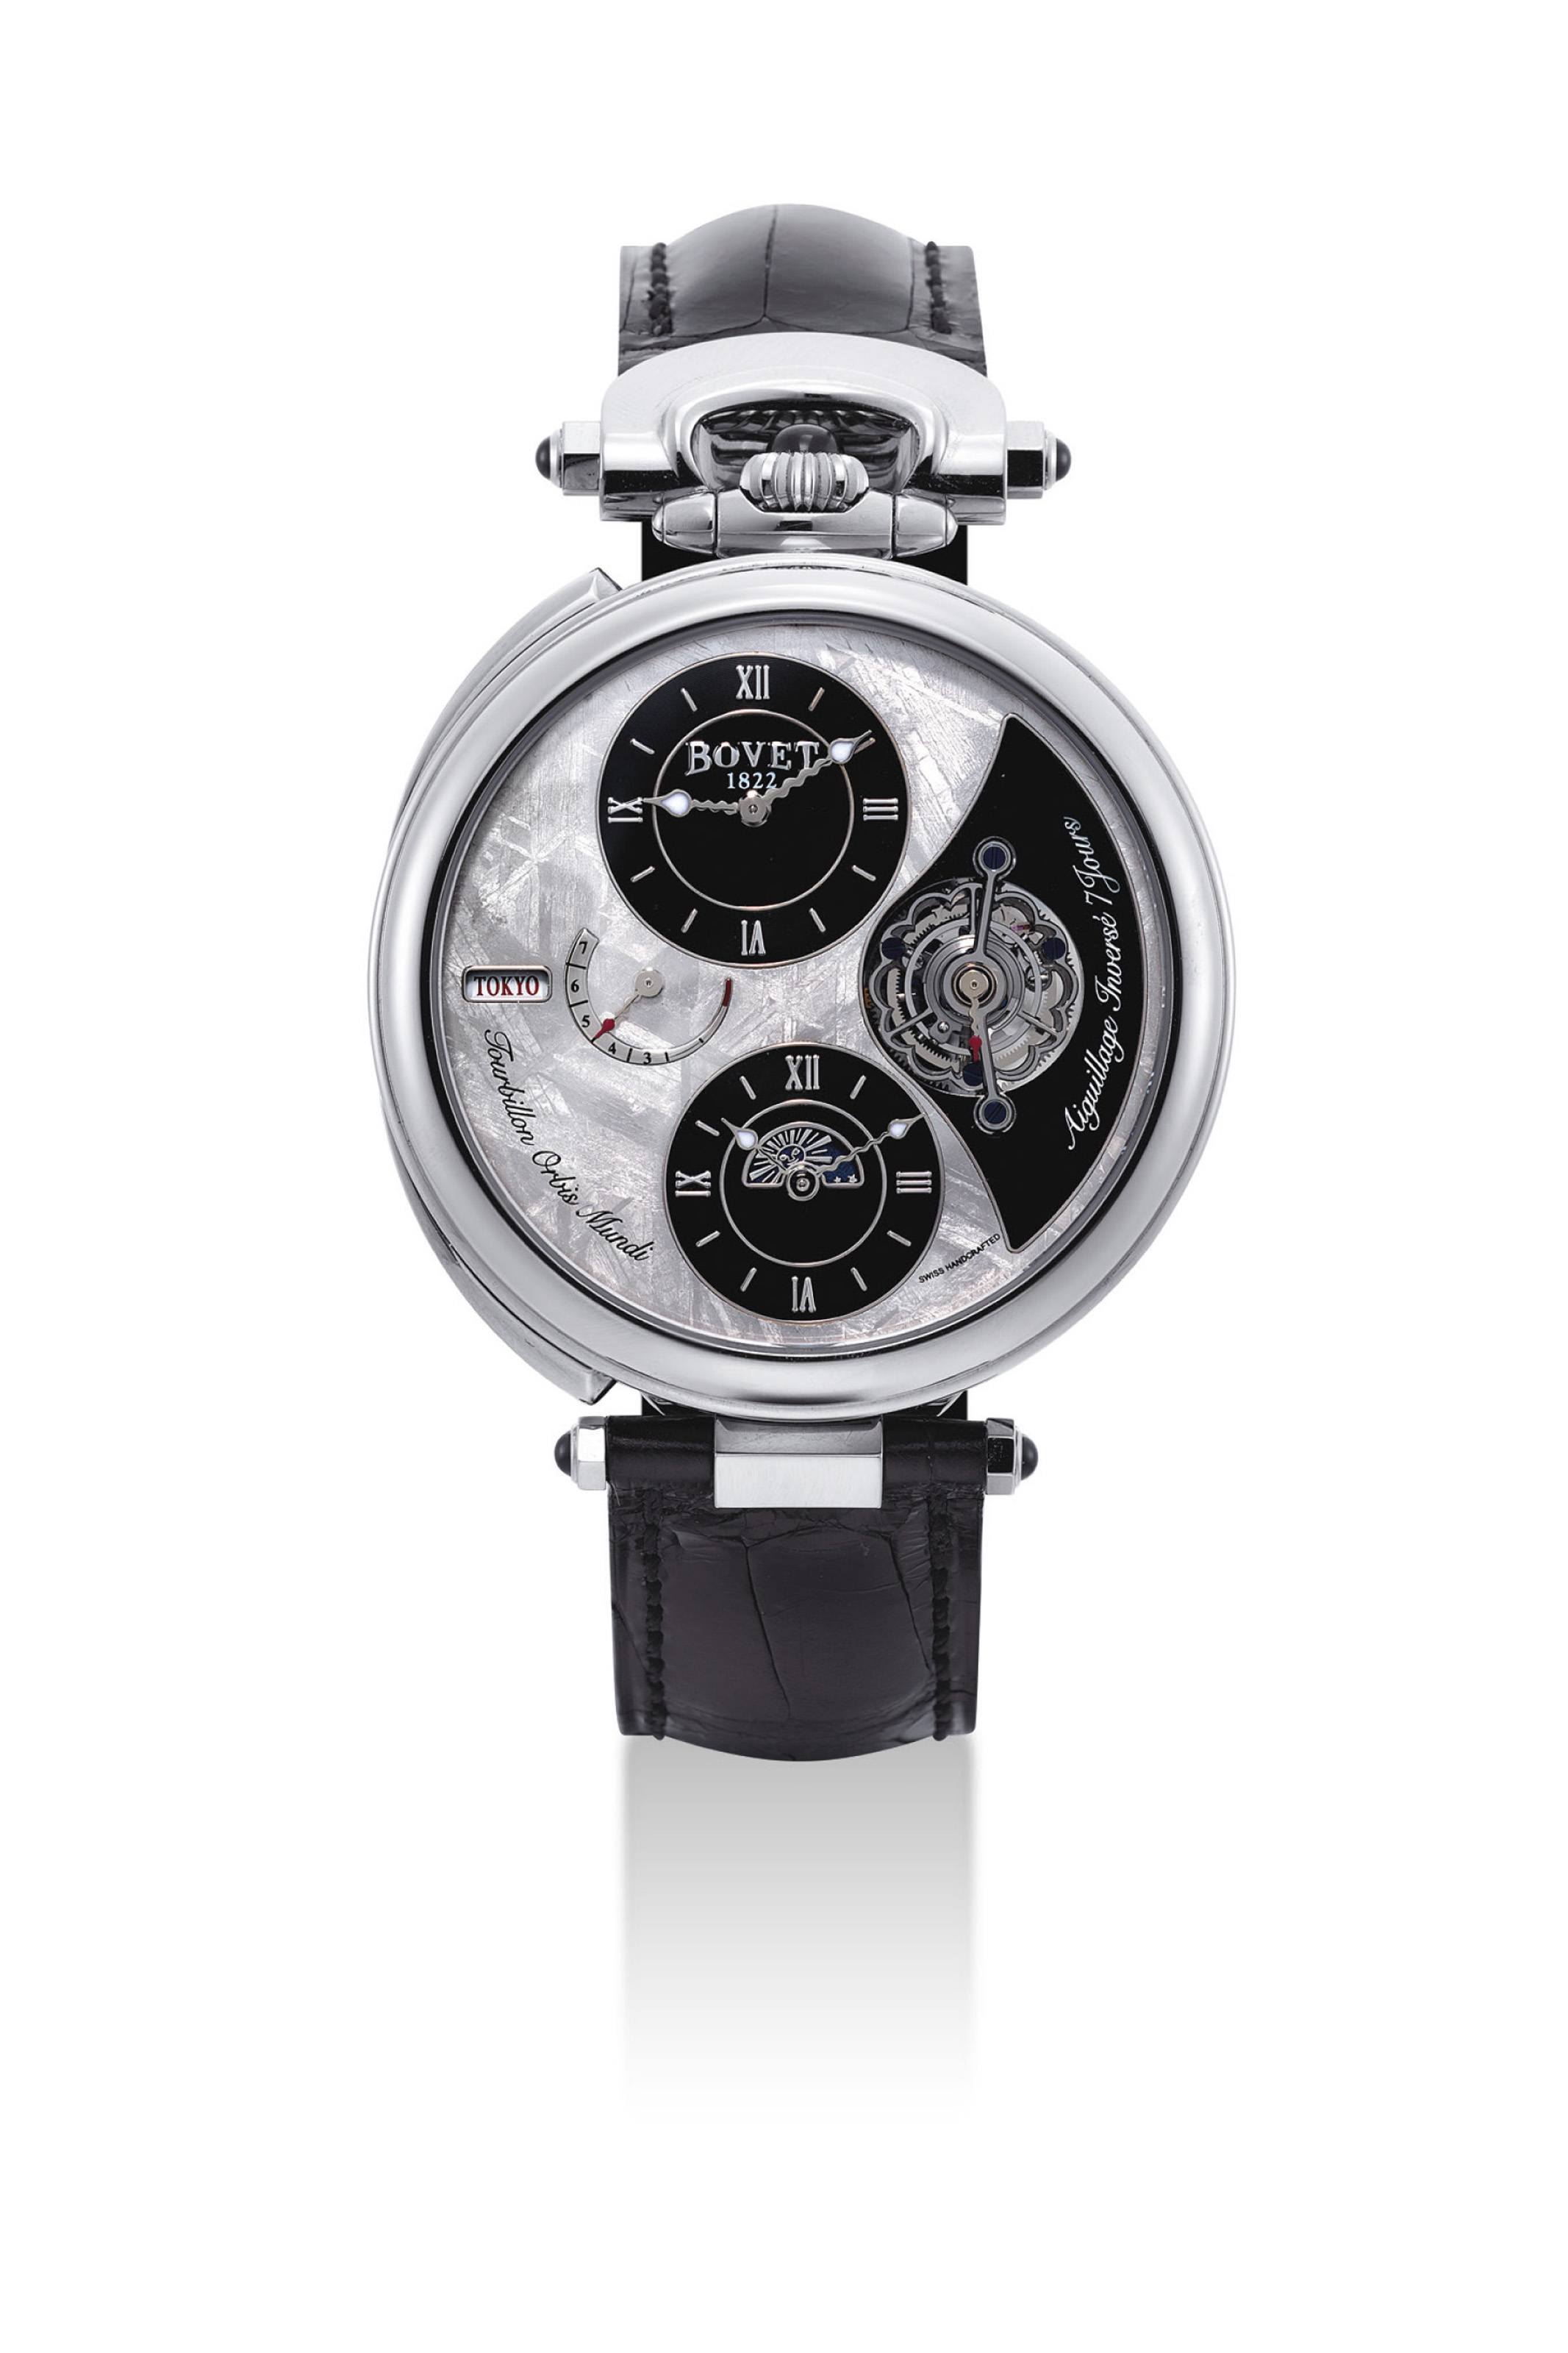 BOVET. A FINE AND RARE 18K WHITE GOLD LIMITED EDITION DUAL TIME TOURBILLION CONVERTIBLE TIMEPIECE WITH 7 DAY POWER RESERVE, DAY AND NIGHT INDICATION AND METEORITE DIAL